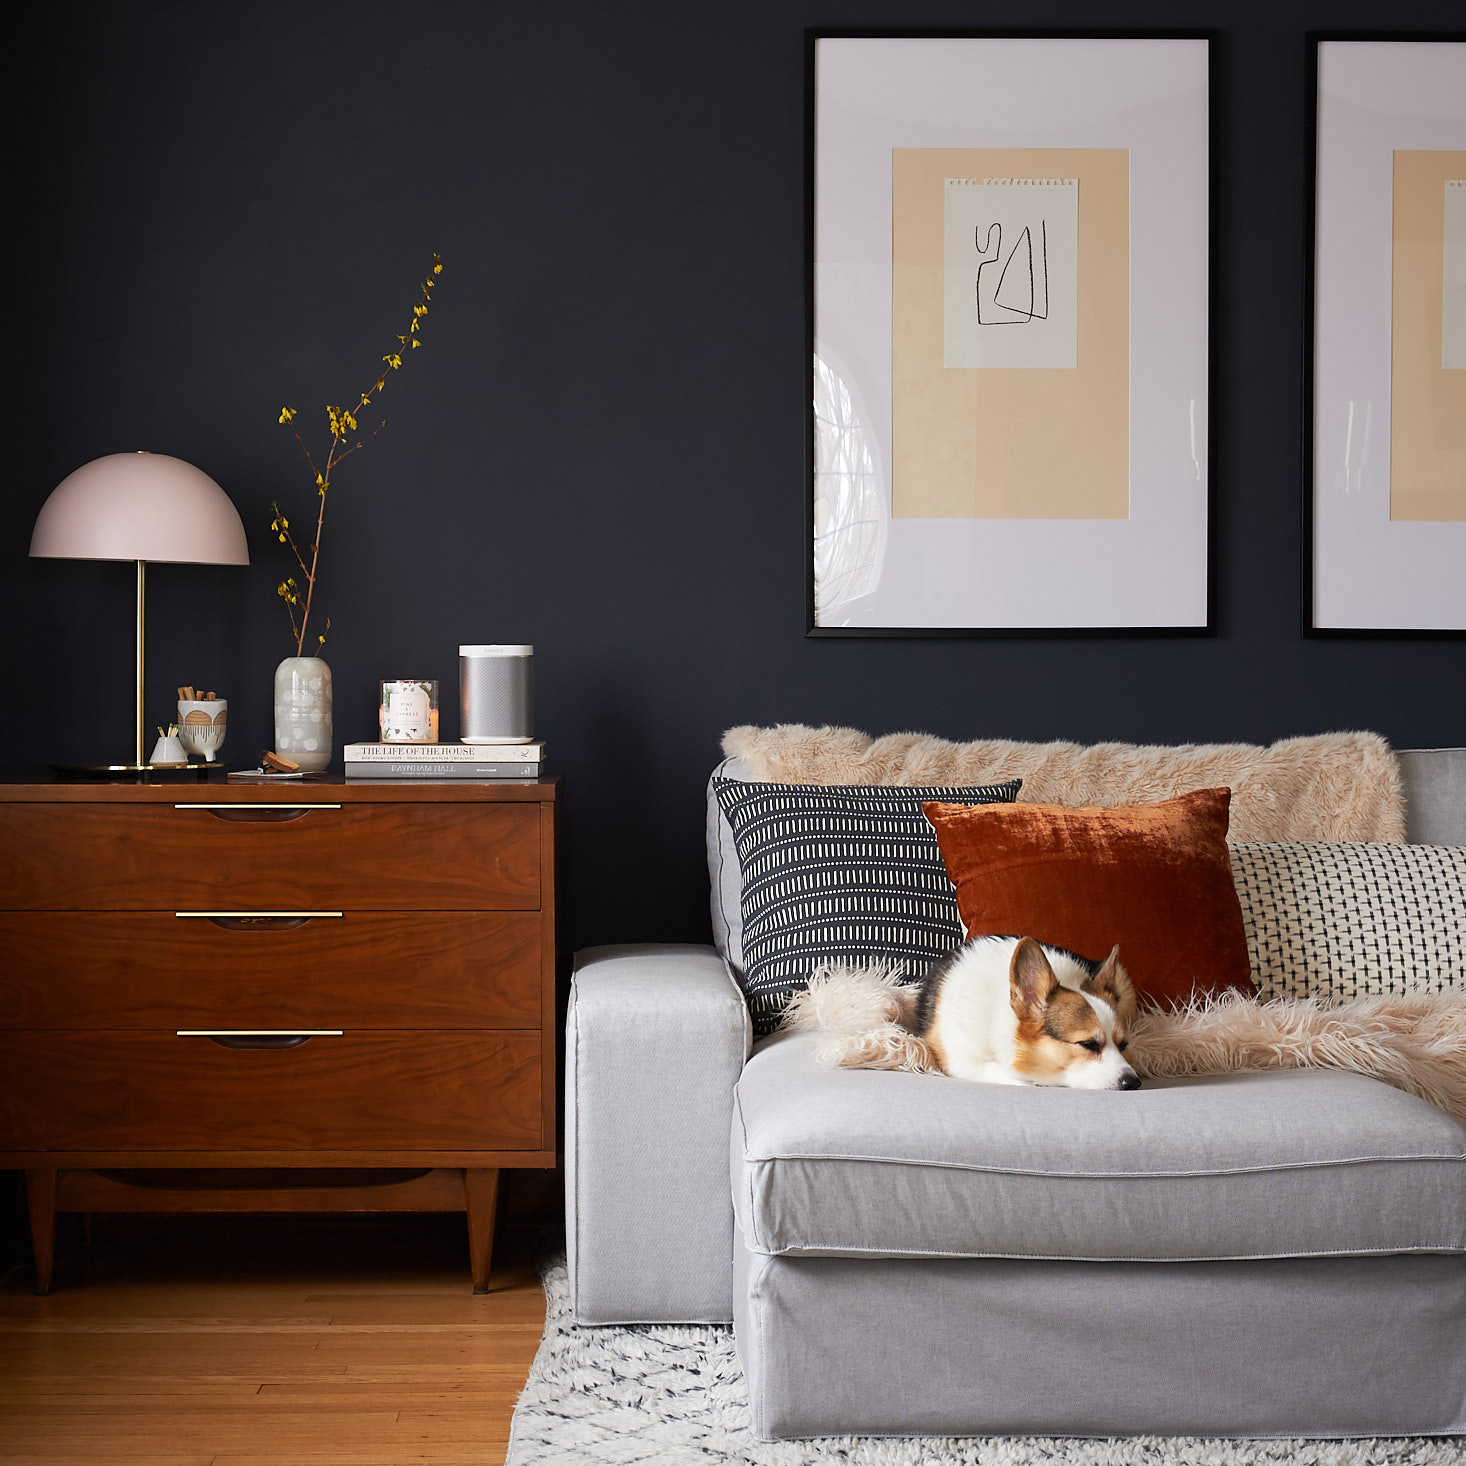 corgi on couch mid century dresser living room